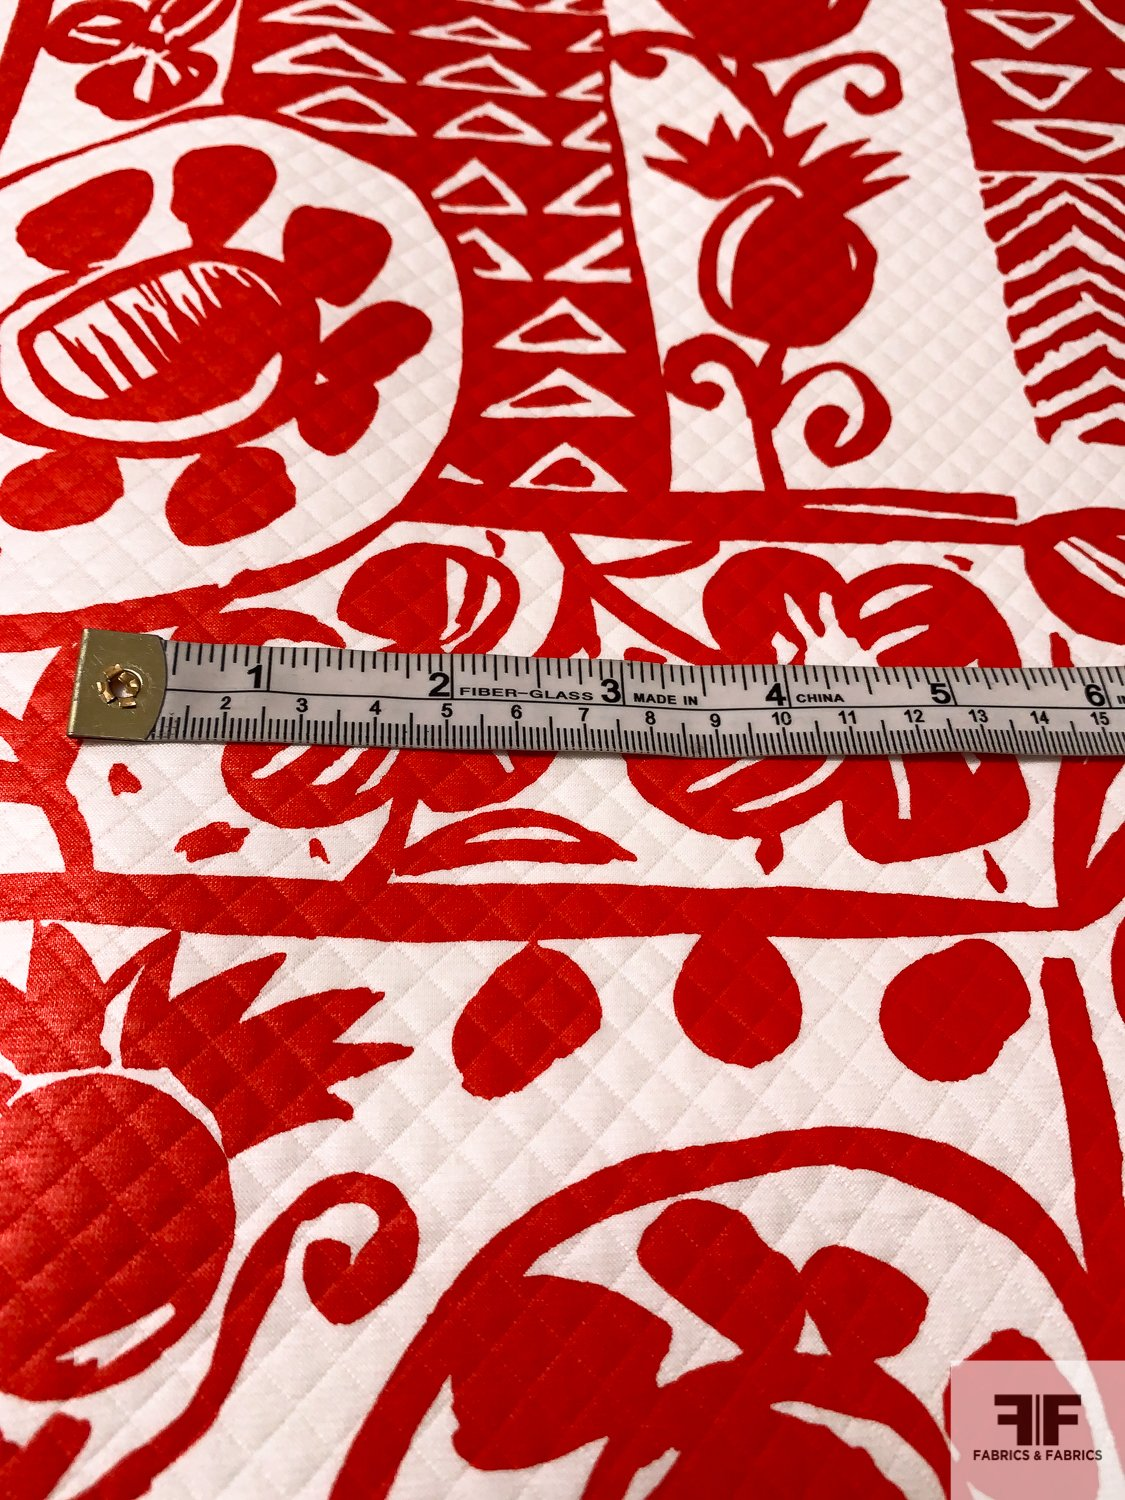 Made in France Bucol Abstract Printed Cotton Sateen Pique - Red / White